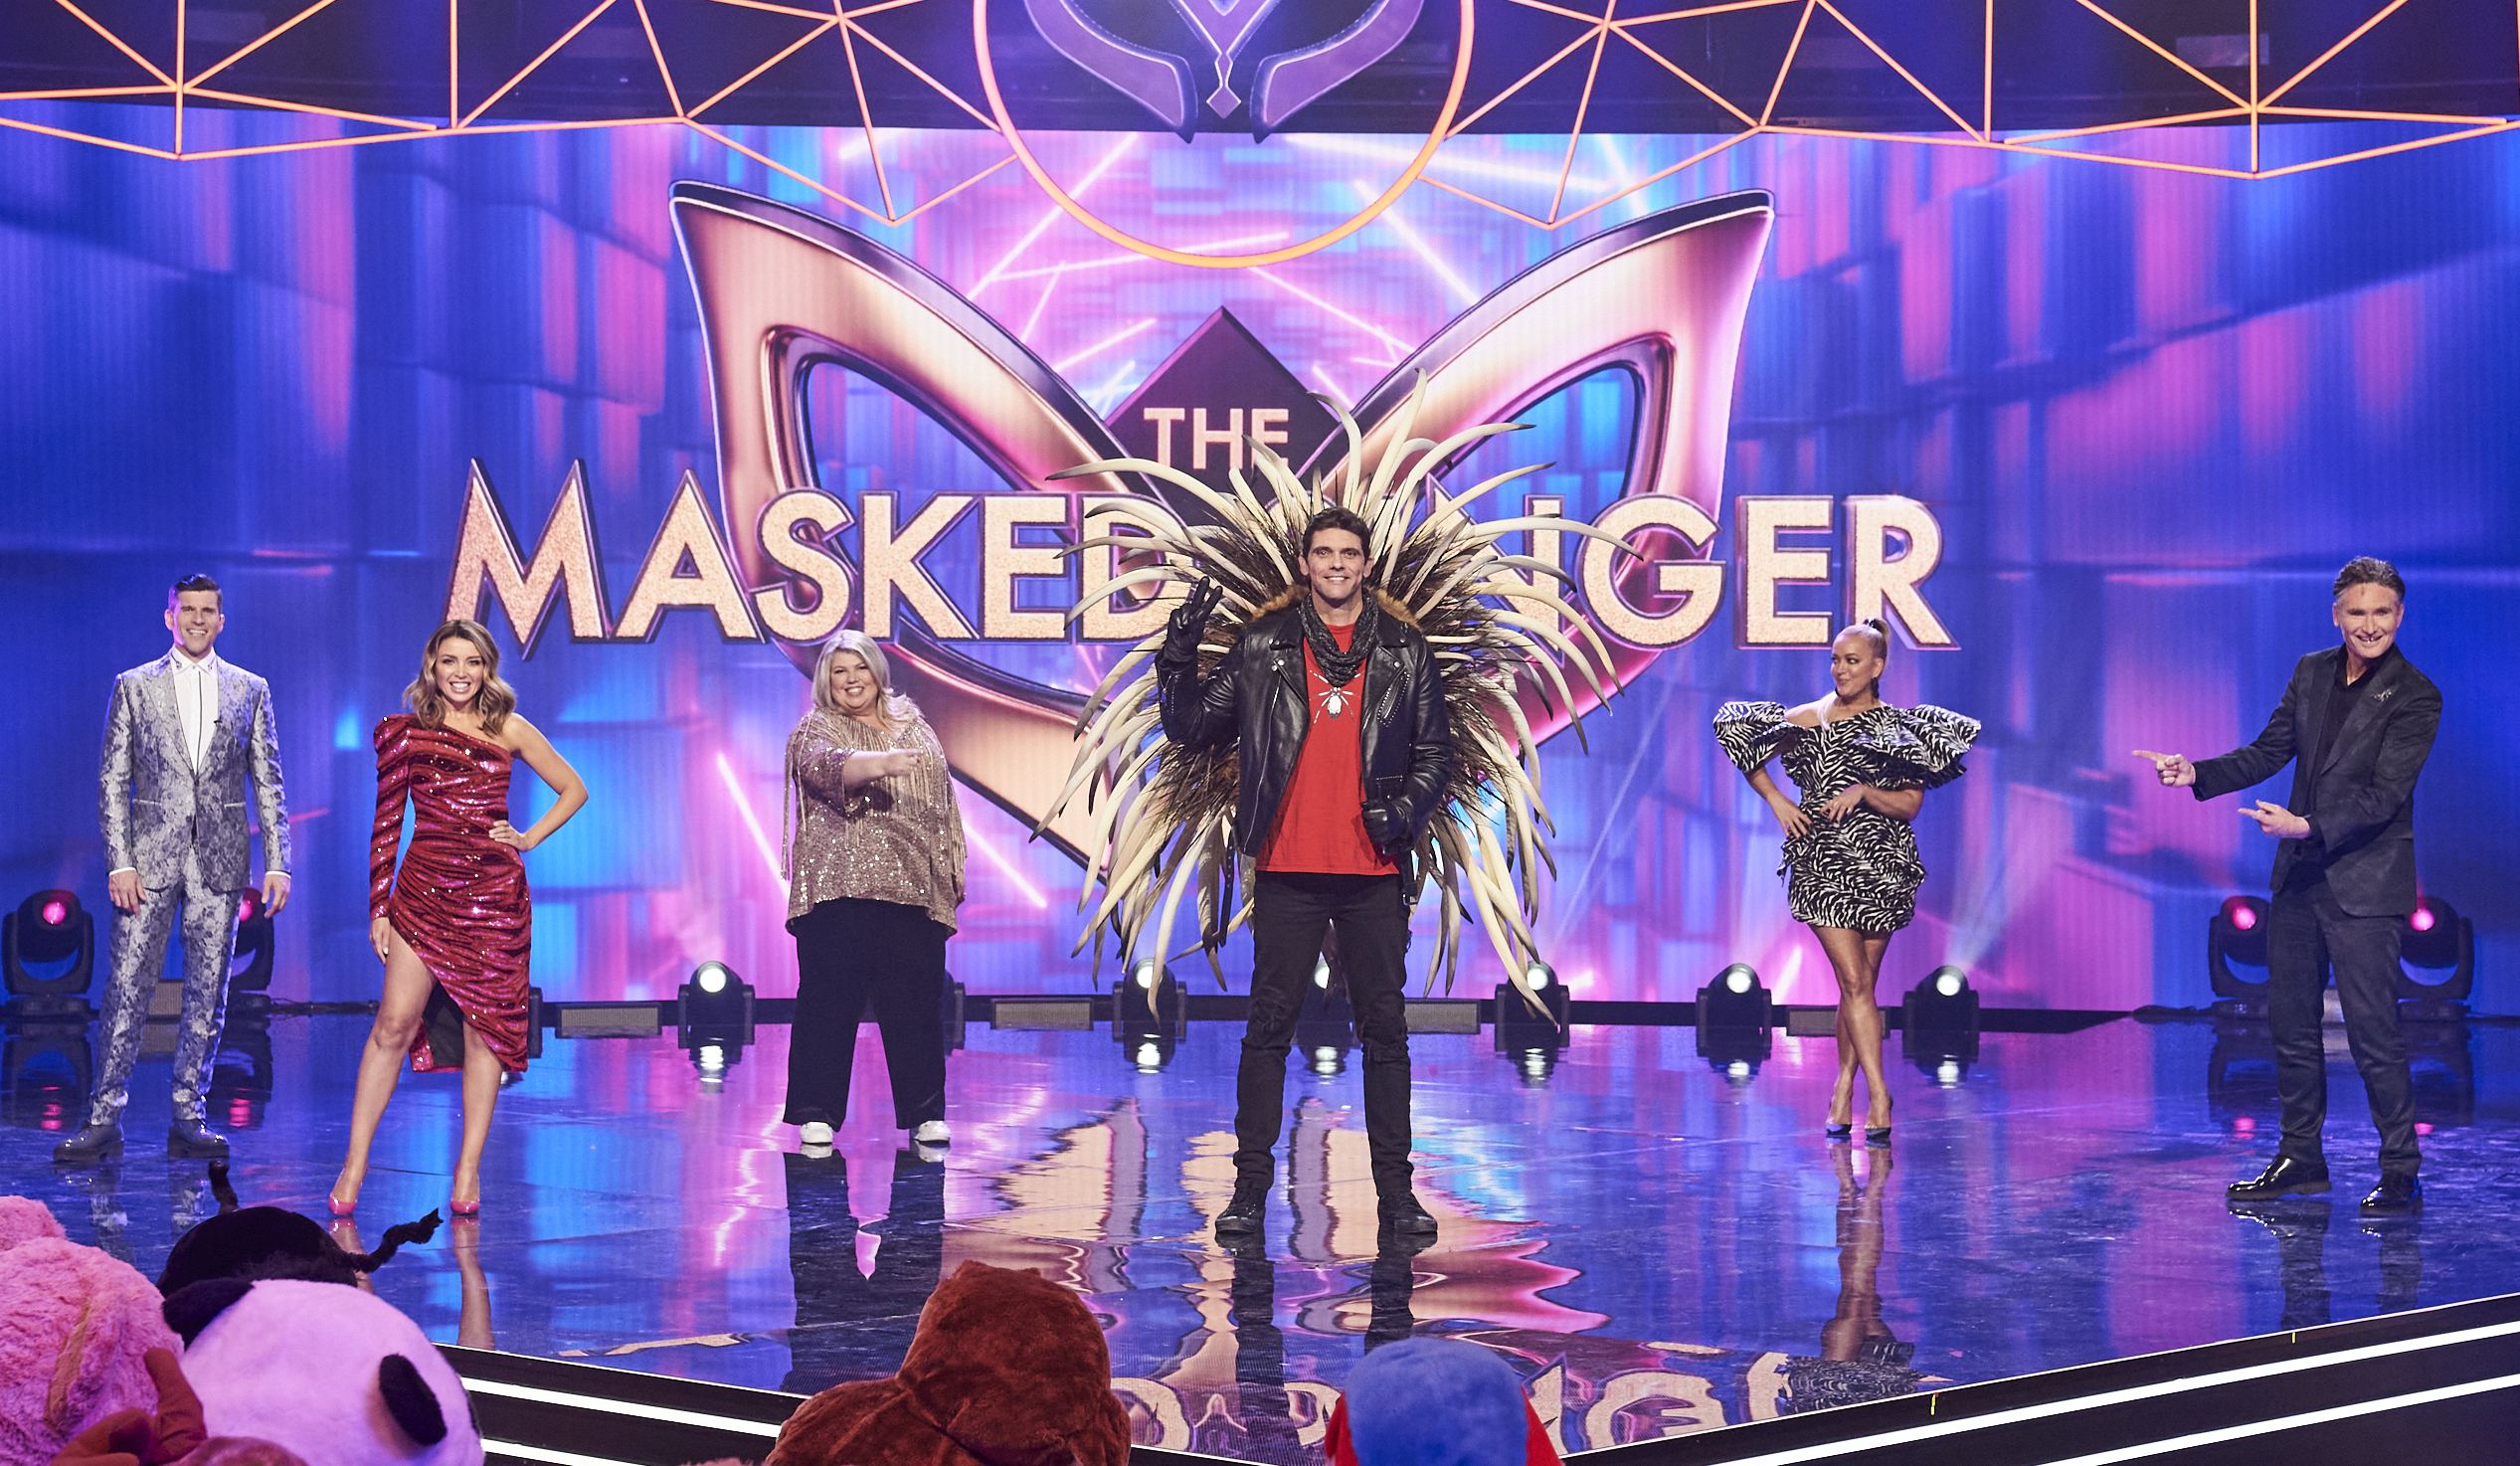 Looks Like 'The Masked Singer' Is In For Another Huge Ratings Year